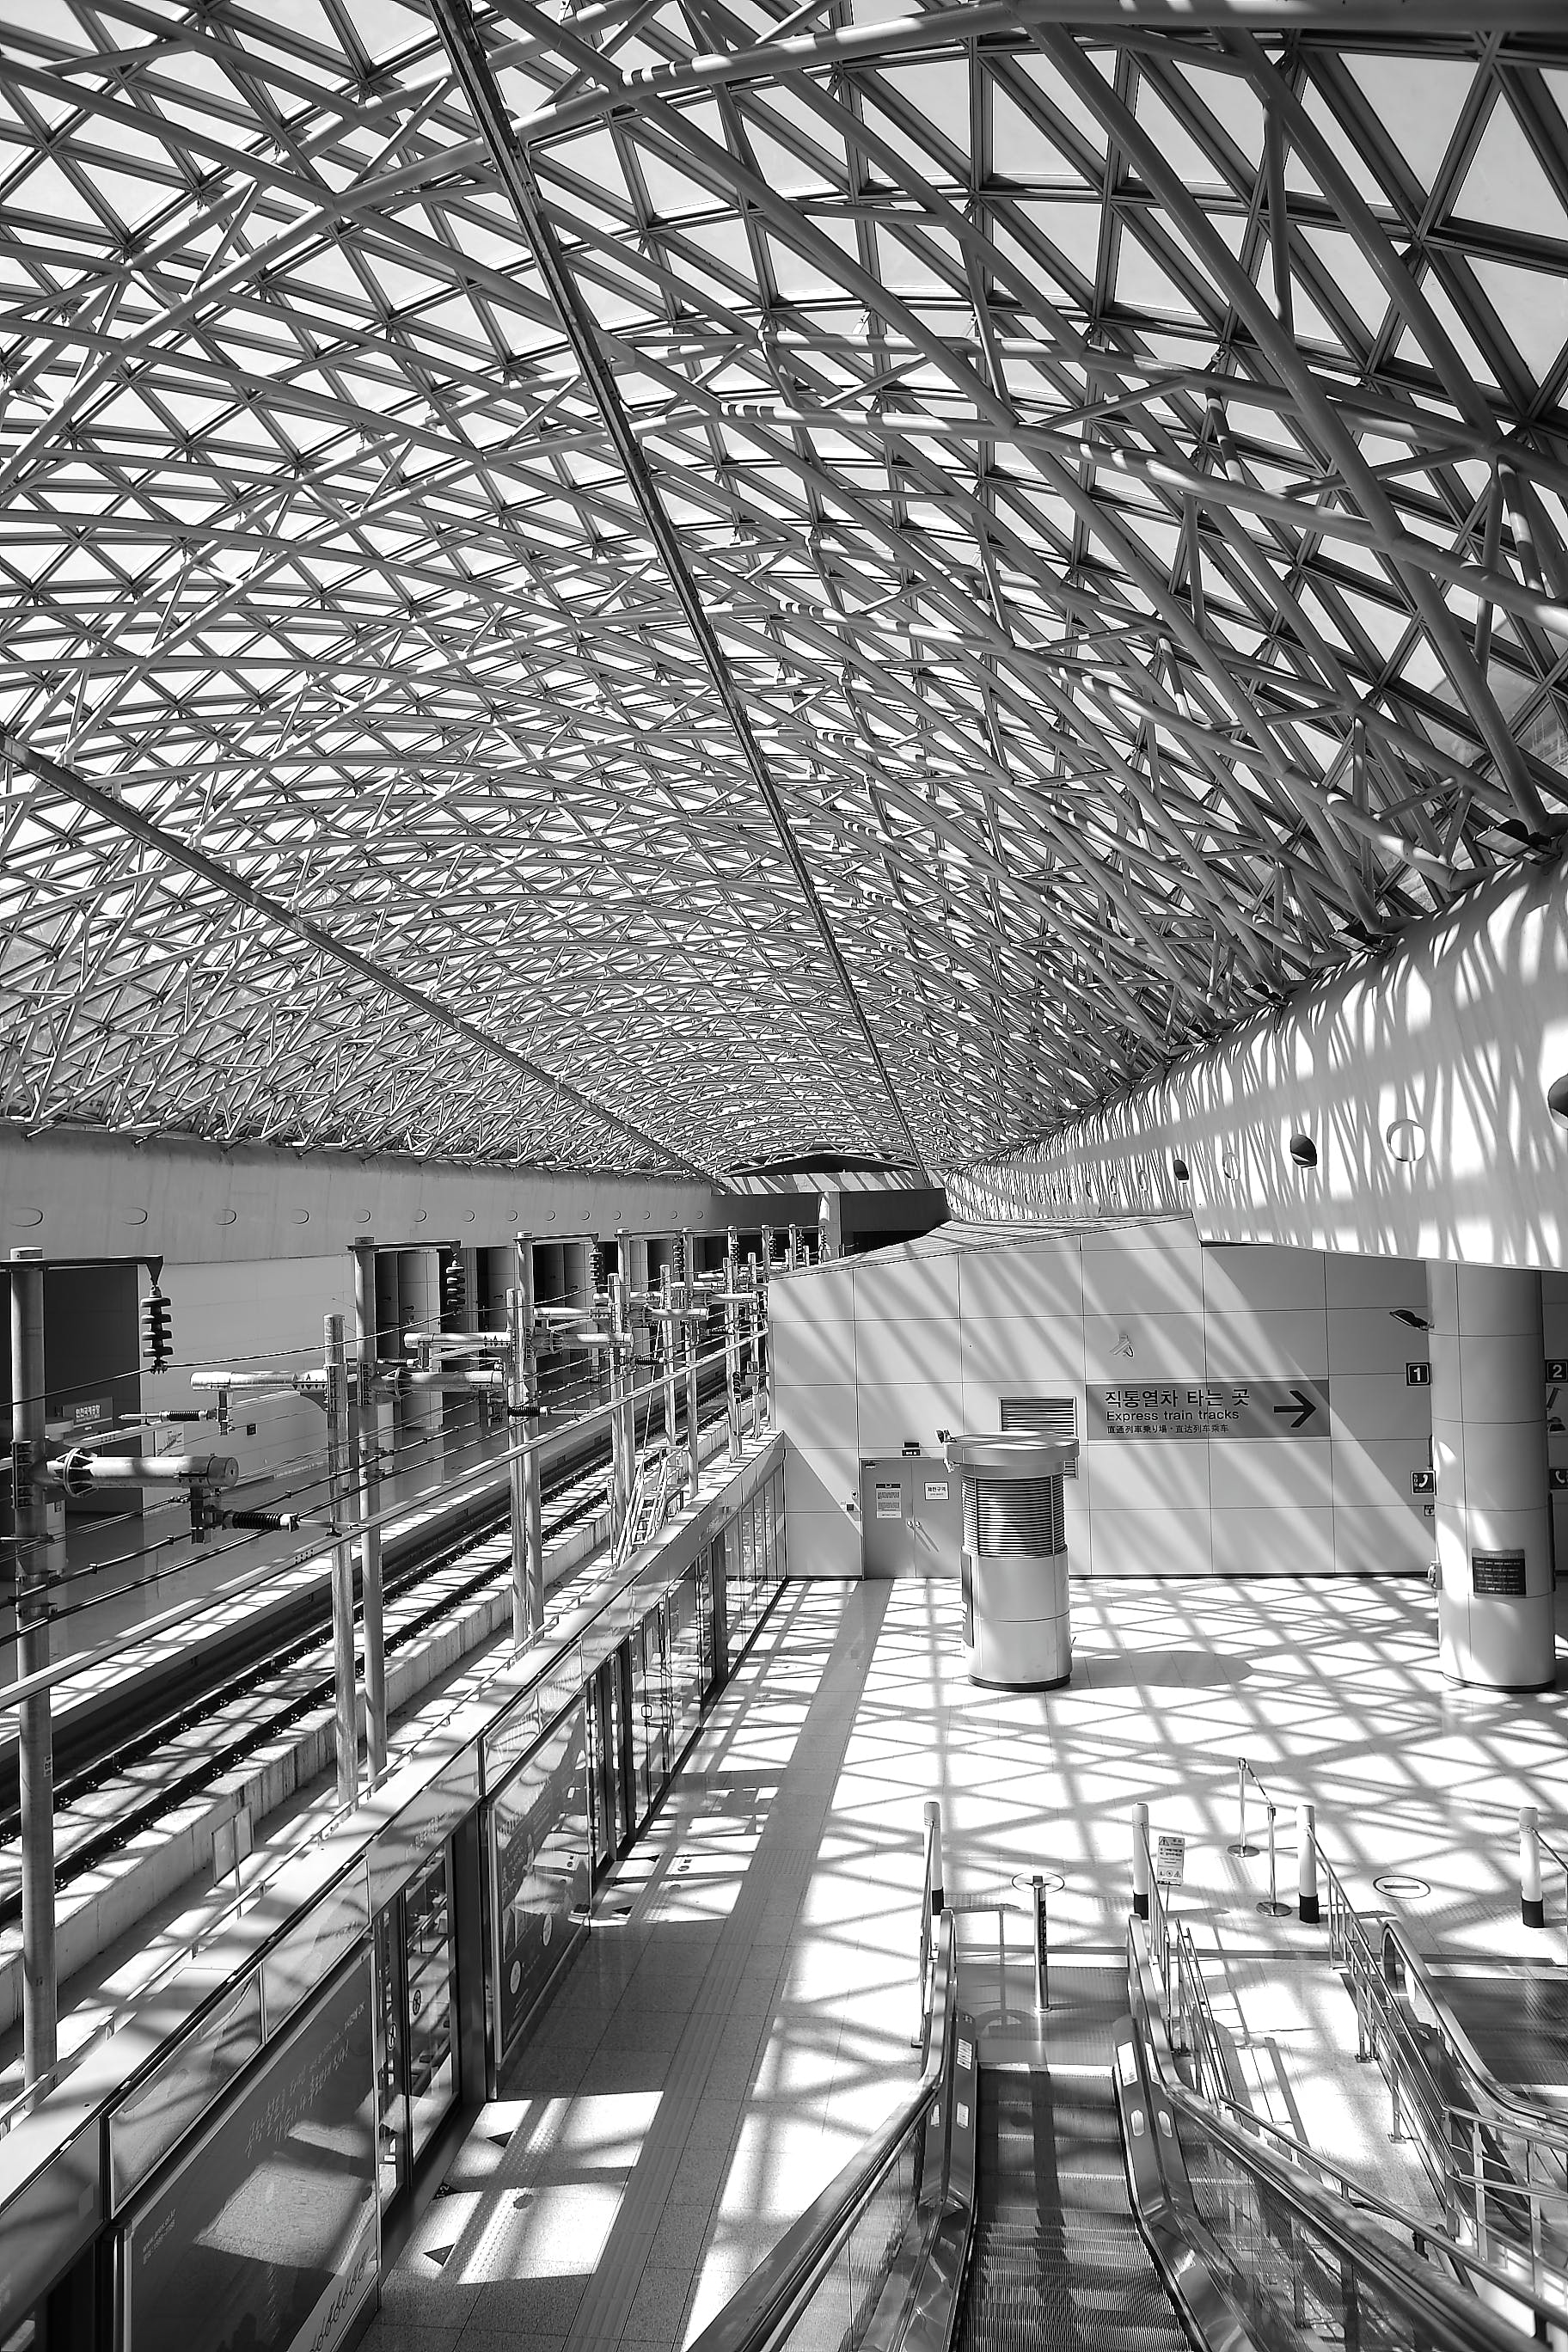 Grey Steel Frame Building Ceiling in Black and White Photograph during Daytime